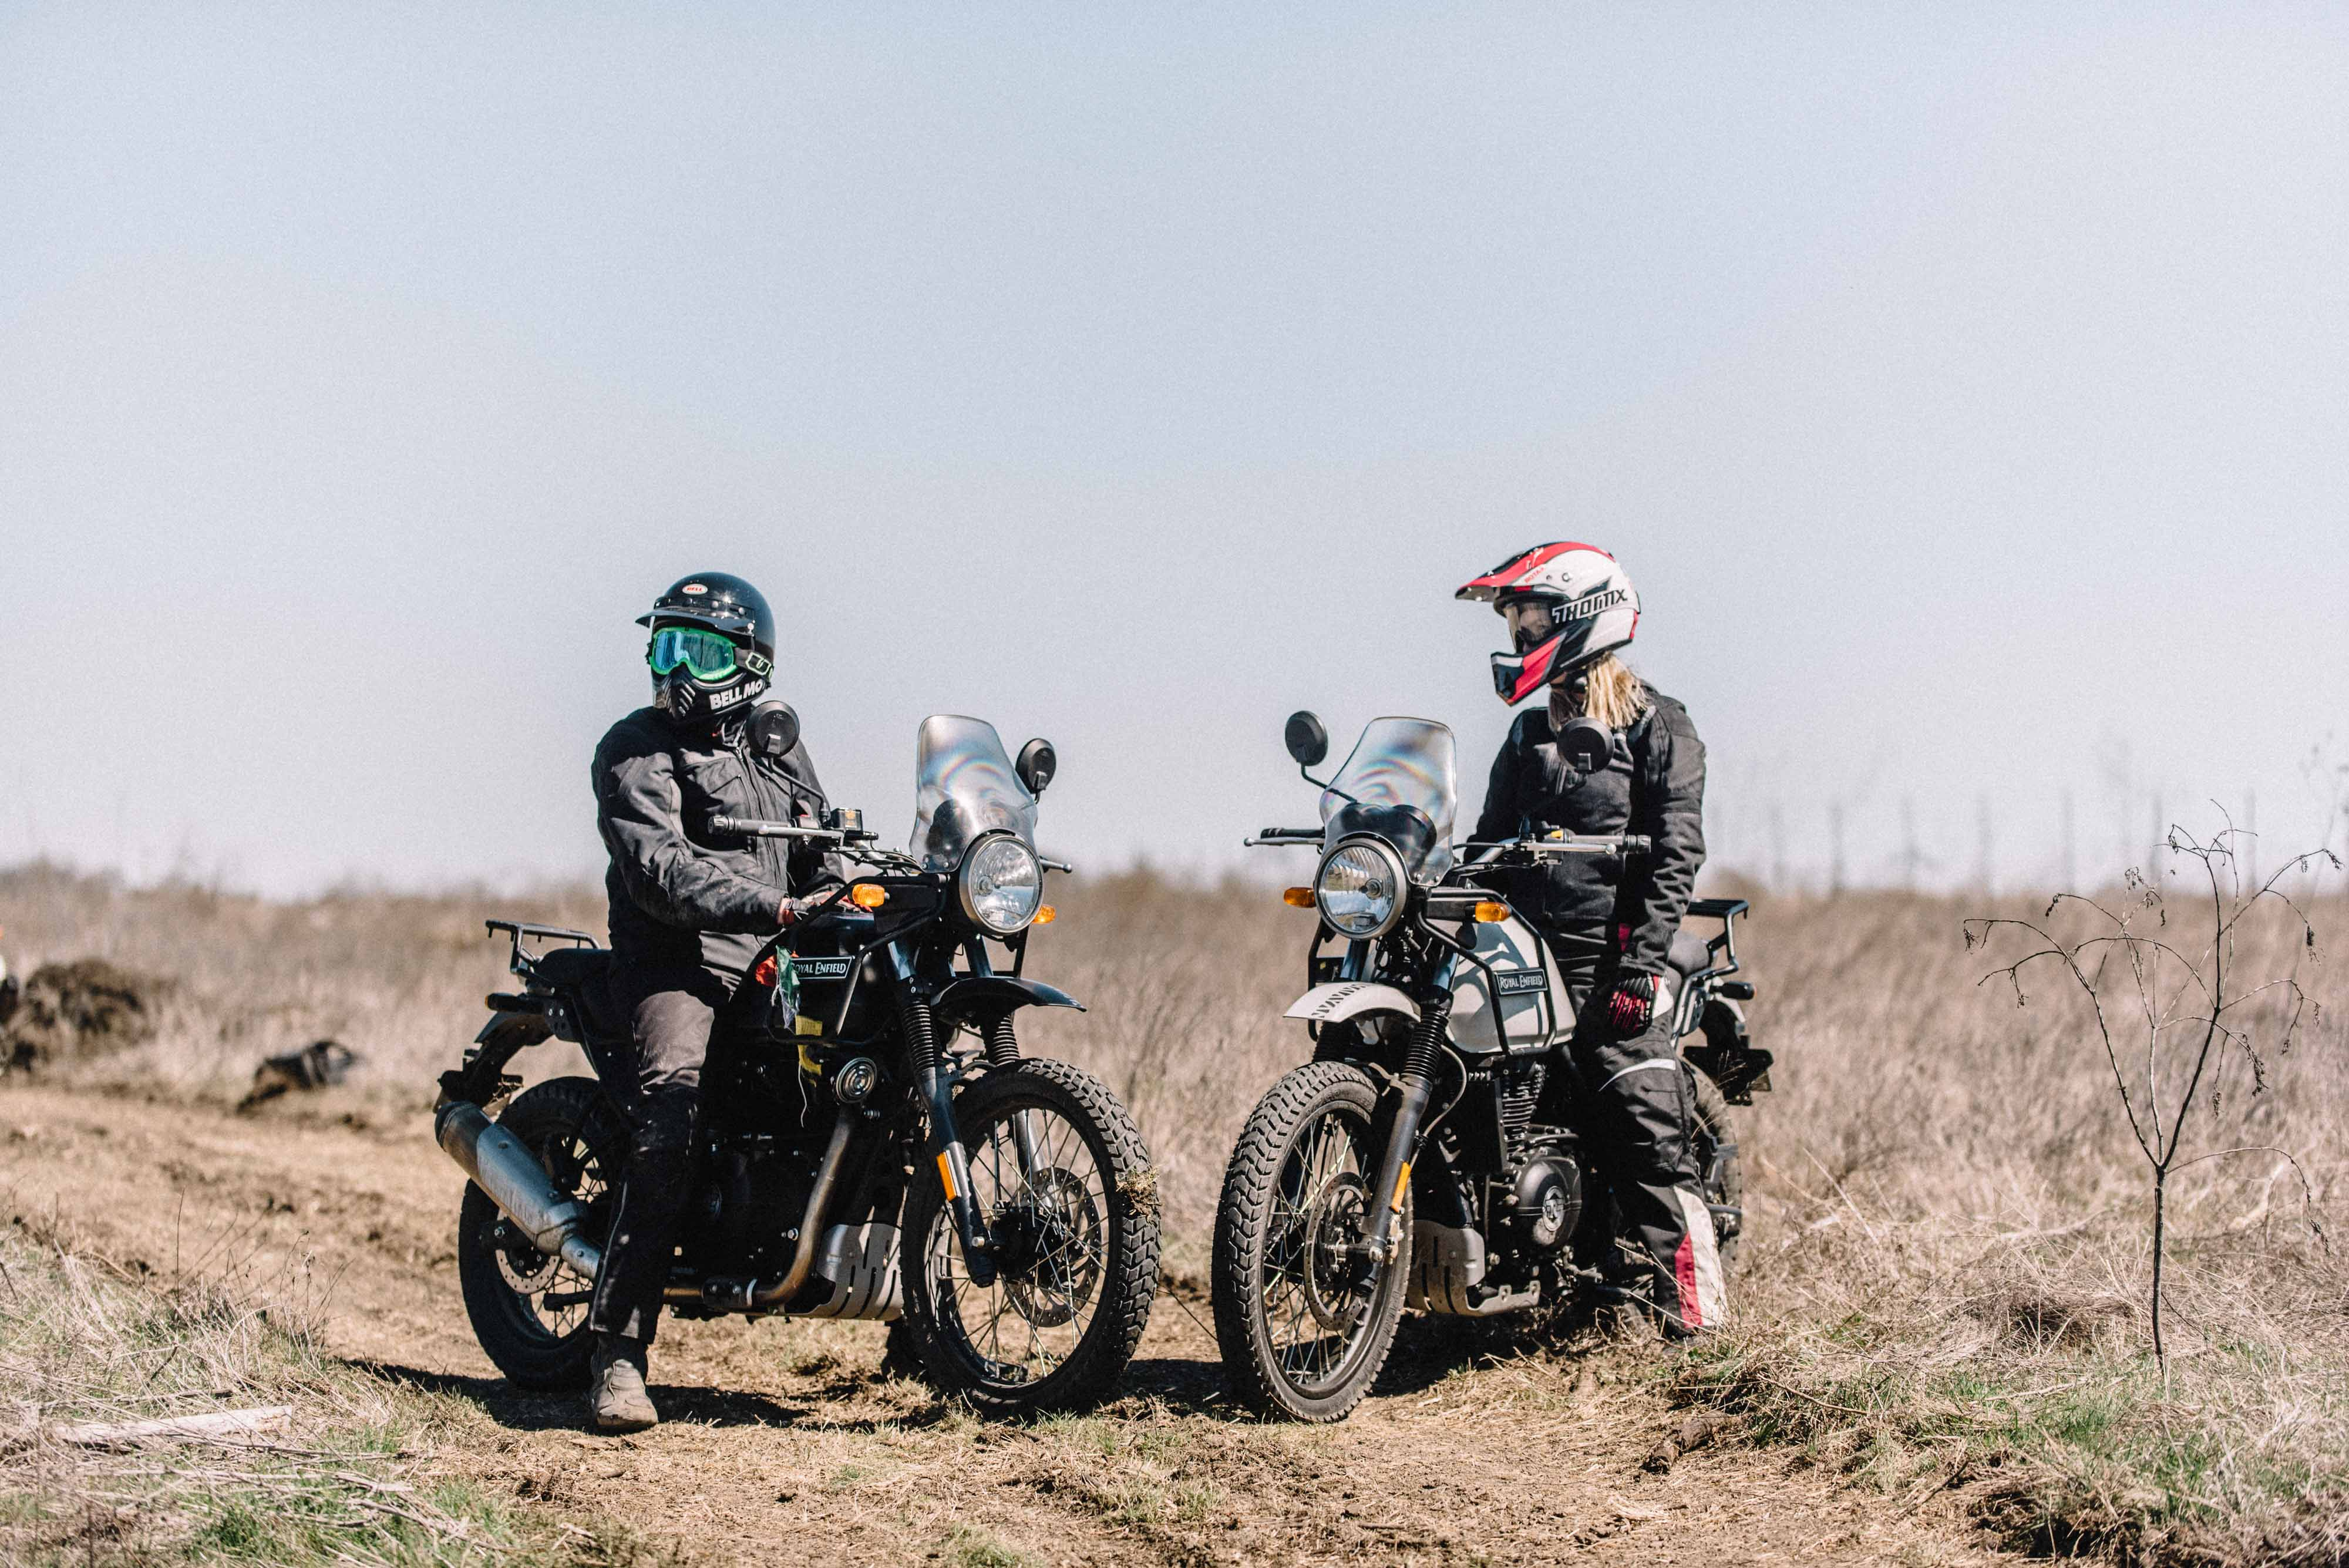 Royal Enfield tries to overcome its past and build a reputation for